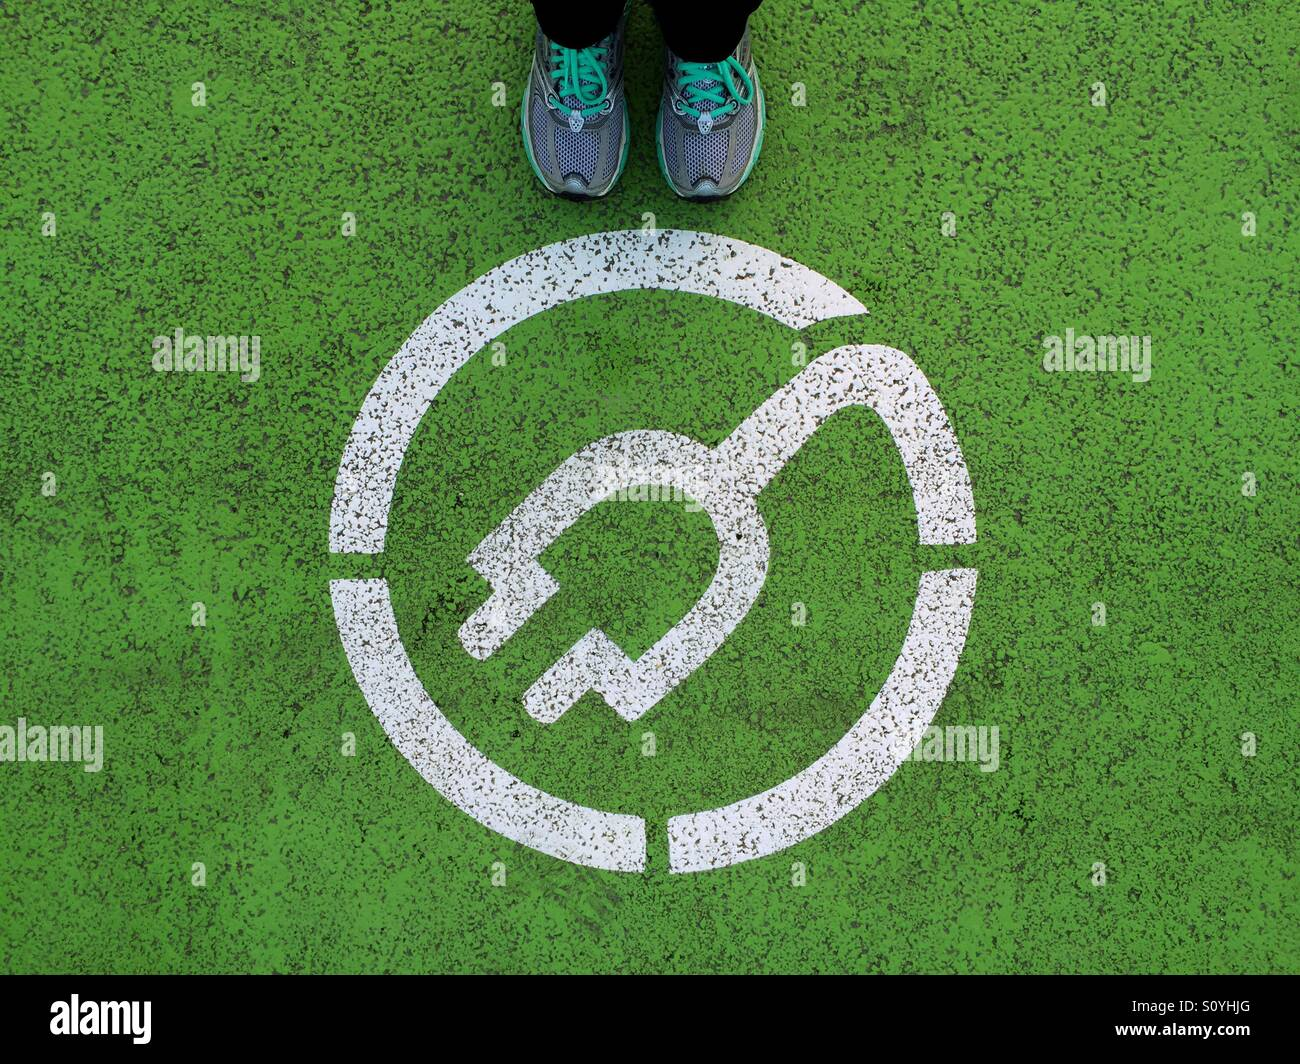 Standing next to electric car recharging point sign - Stock Image